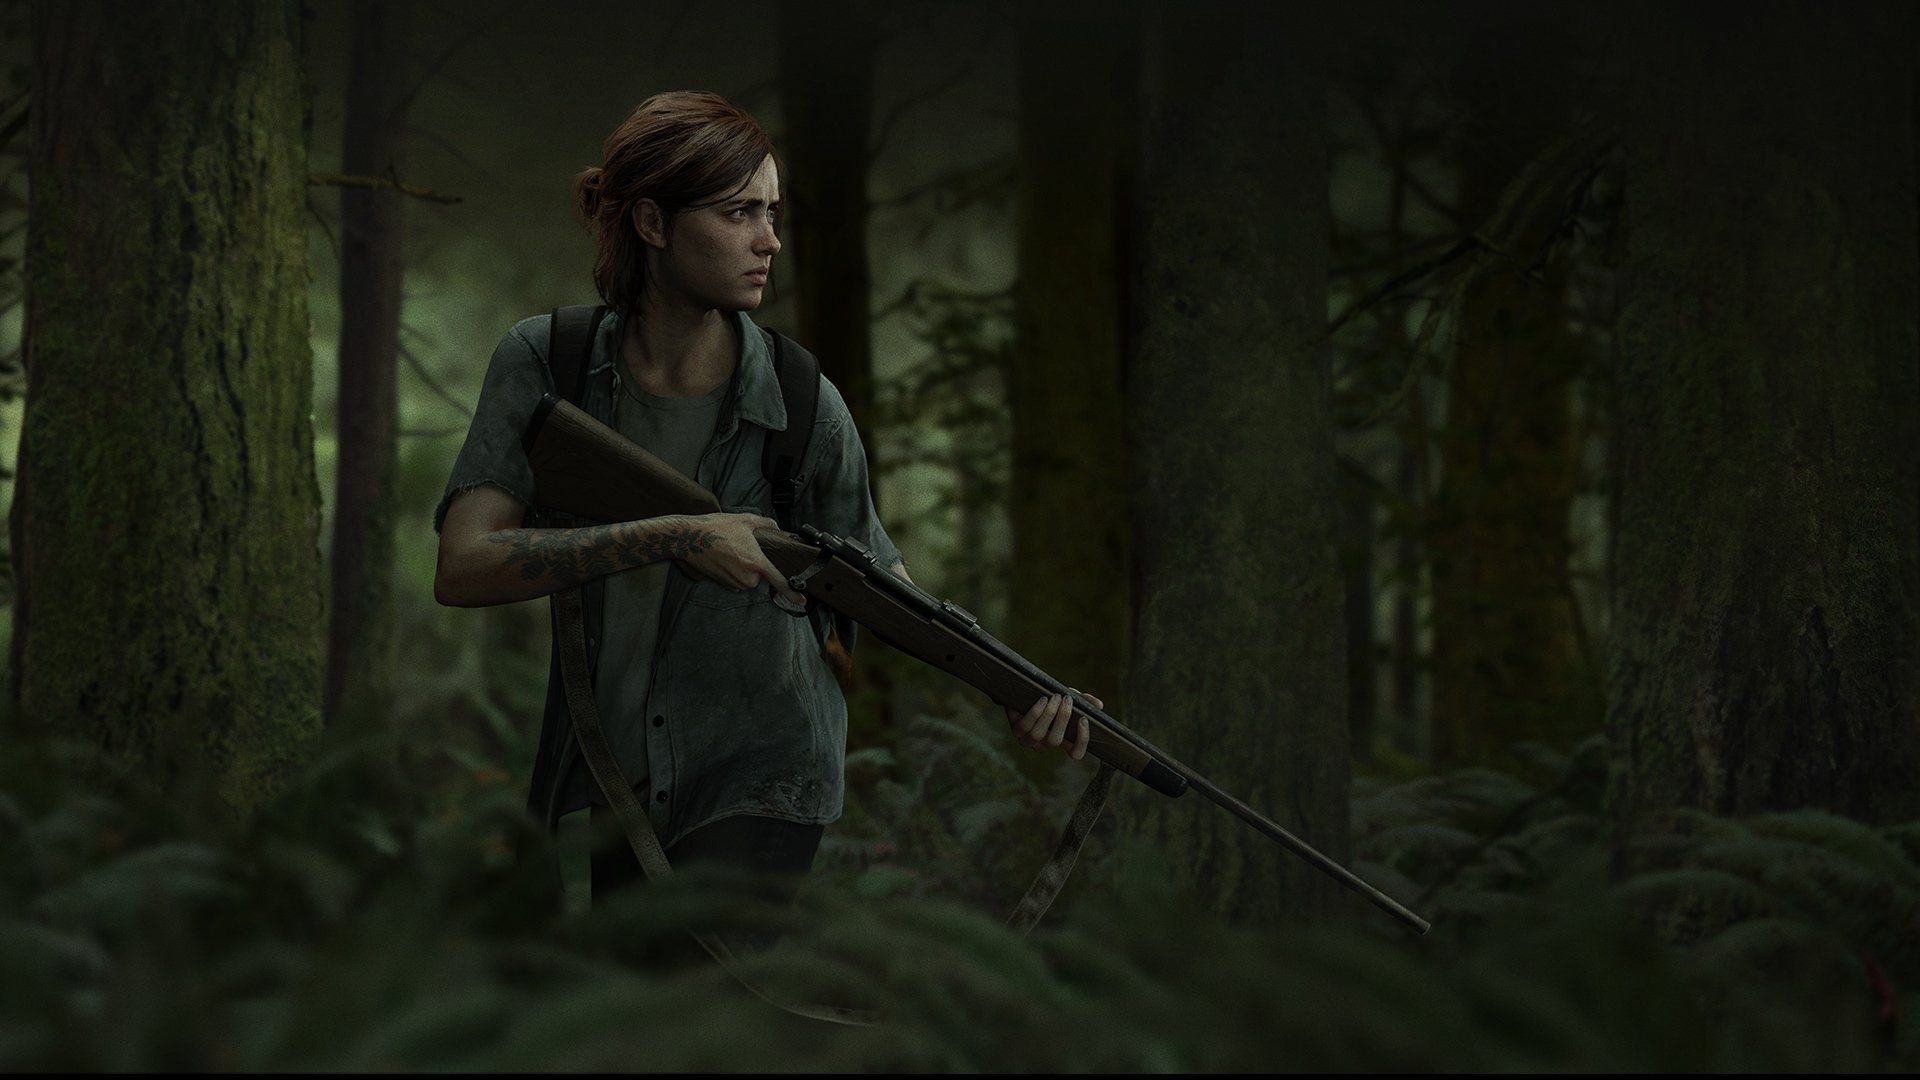 Last Of Us 2 Iphone Wallpapers In 2021 The Last Of Us The Lest Of Us The Last Of Us2